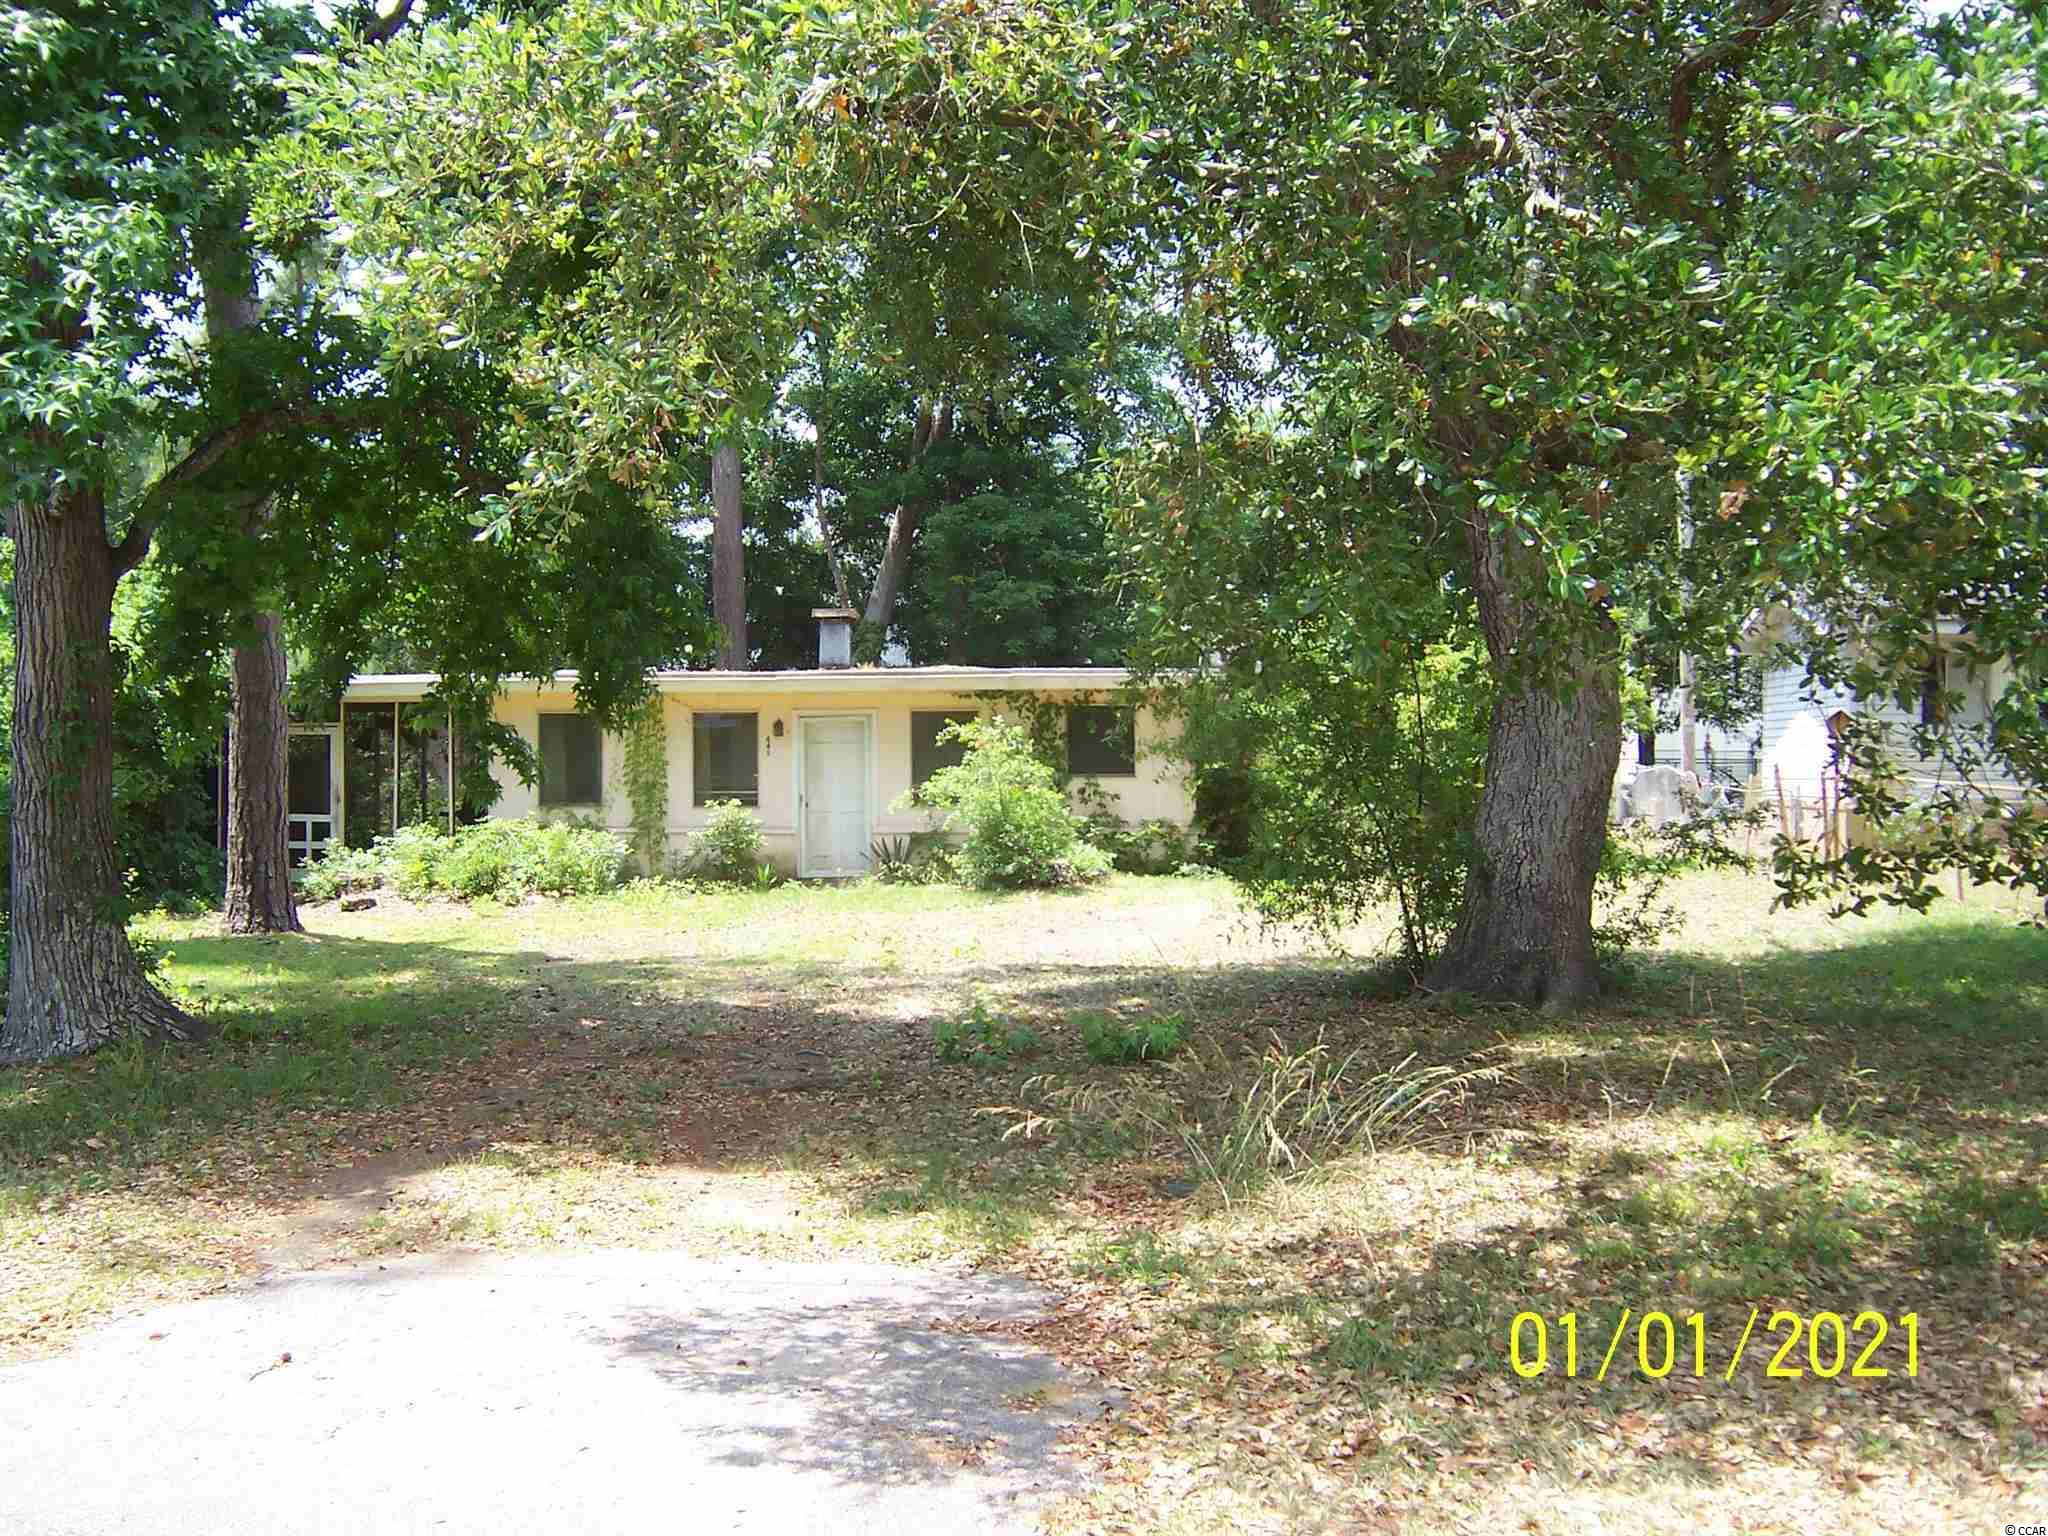 Only 1/2 miles from Atlantic Ocean and Garden City Beach. The structure on the property has no represented value. Property was just surveyed for accuracy. Very level buildable lot.